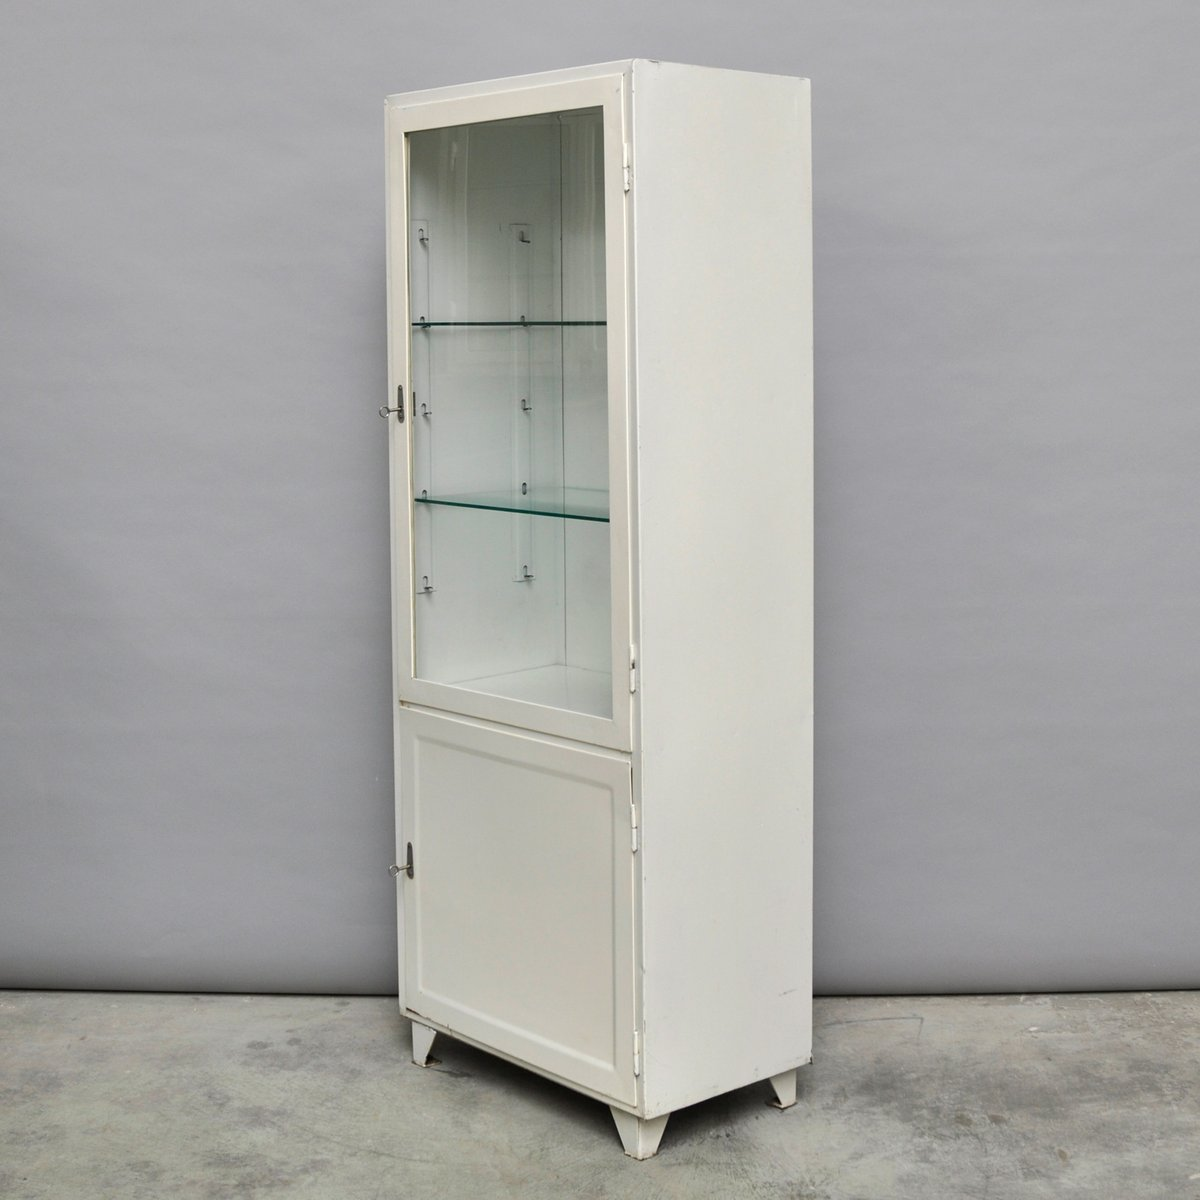 armoire pharmacie vintage en acier et verre pologne 1970s en vente sur pamono. Black Bedroom Furniture Sets. Home Design Ideas